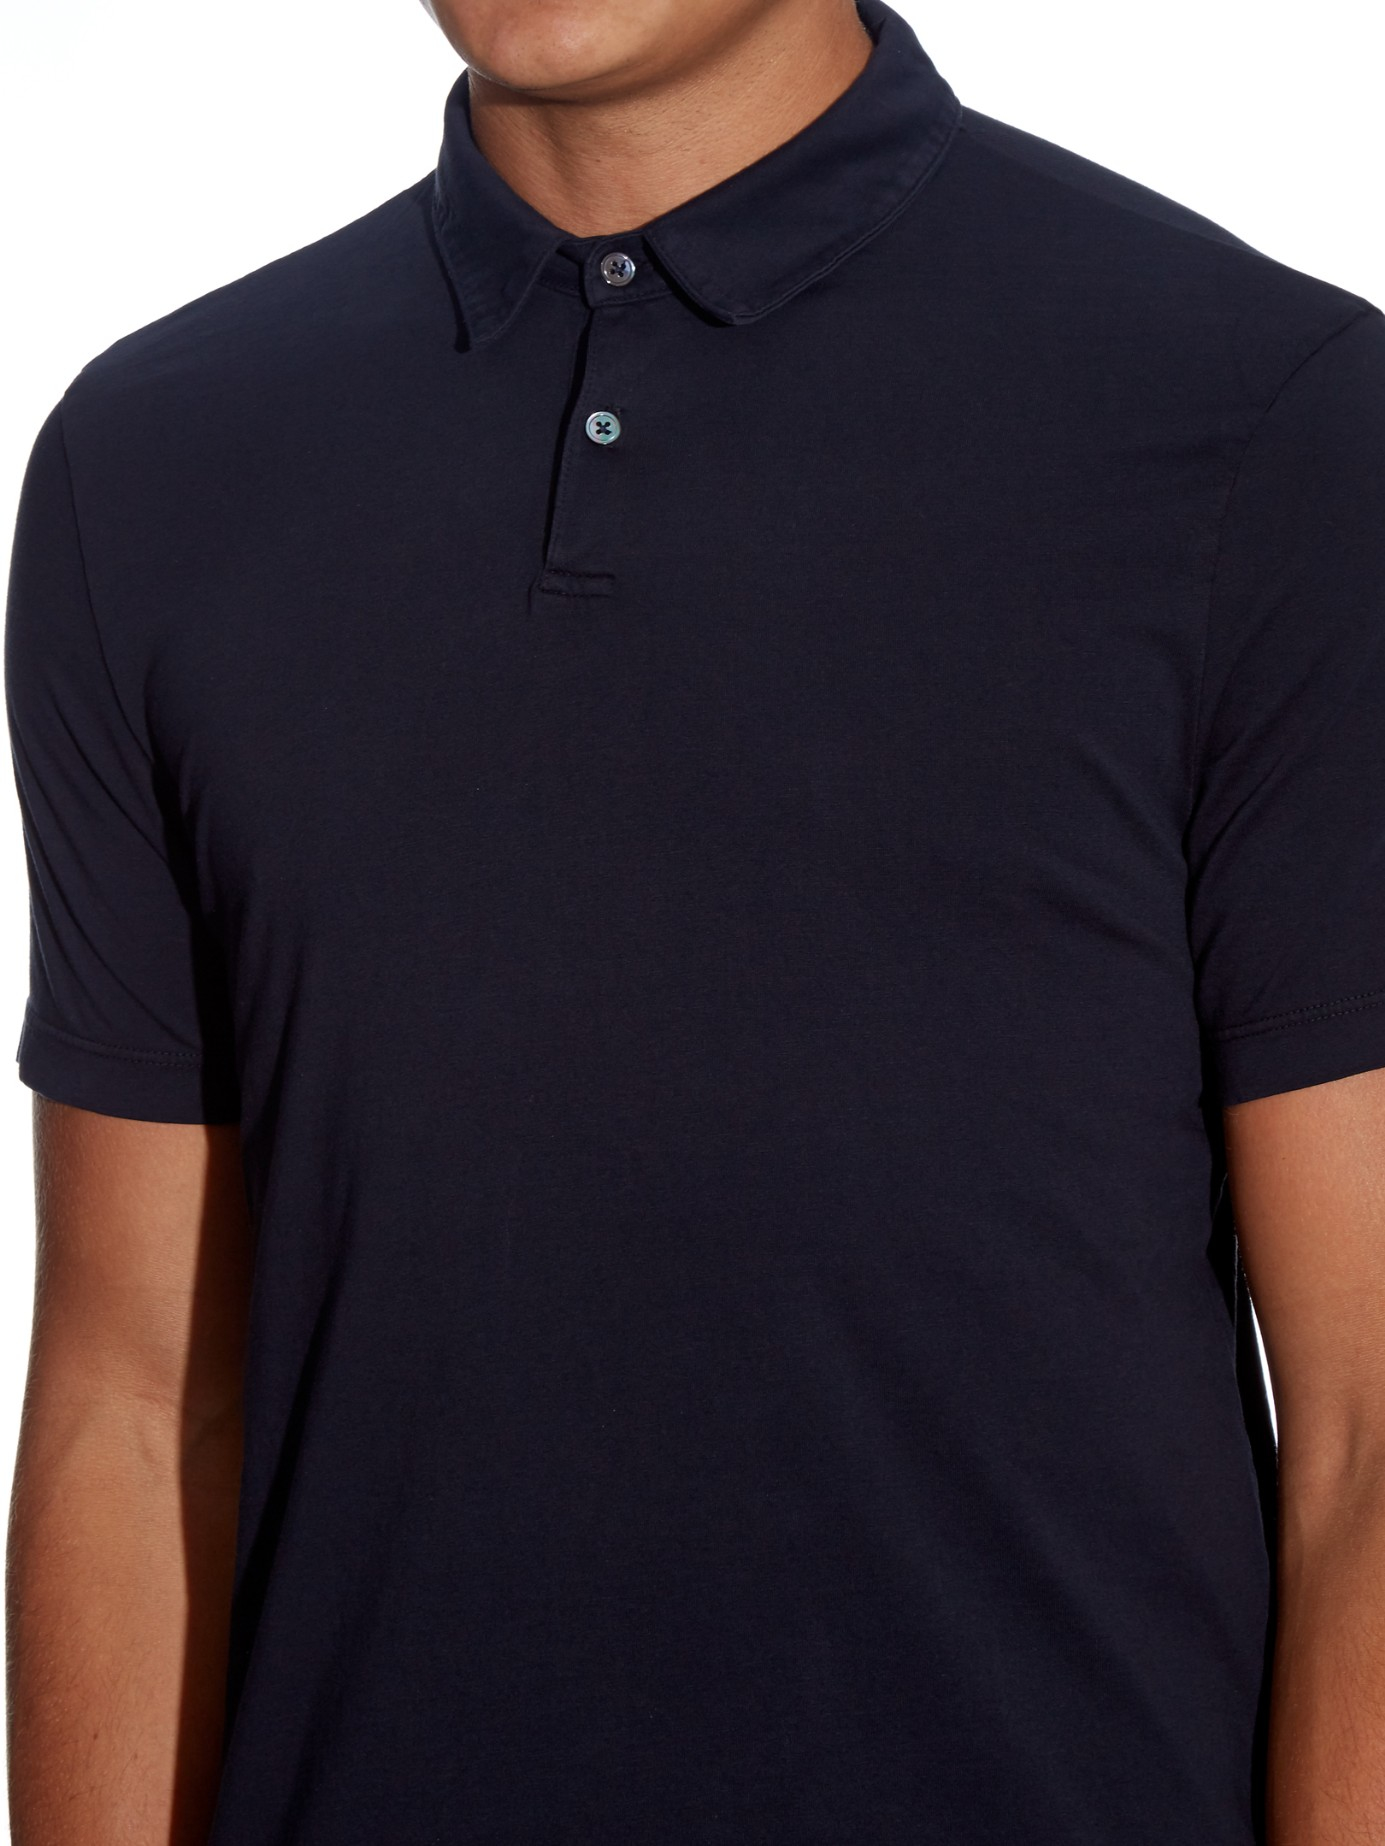 James perse supima cotton polo shirt in blue for men lyst for Supima cotton dress shirts